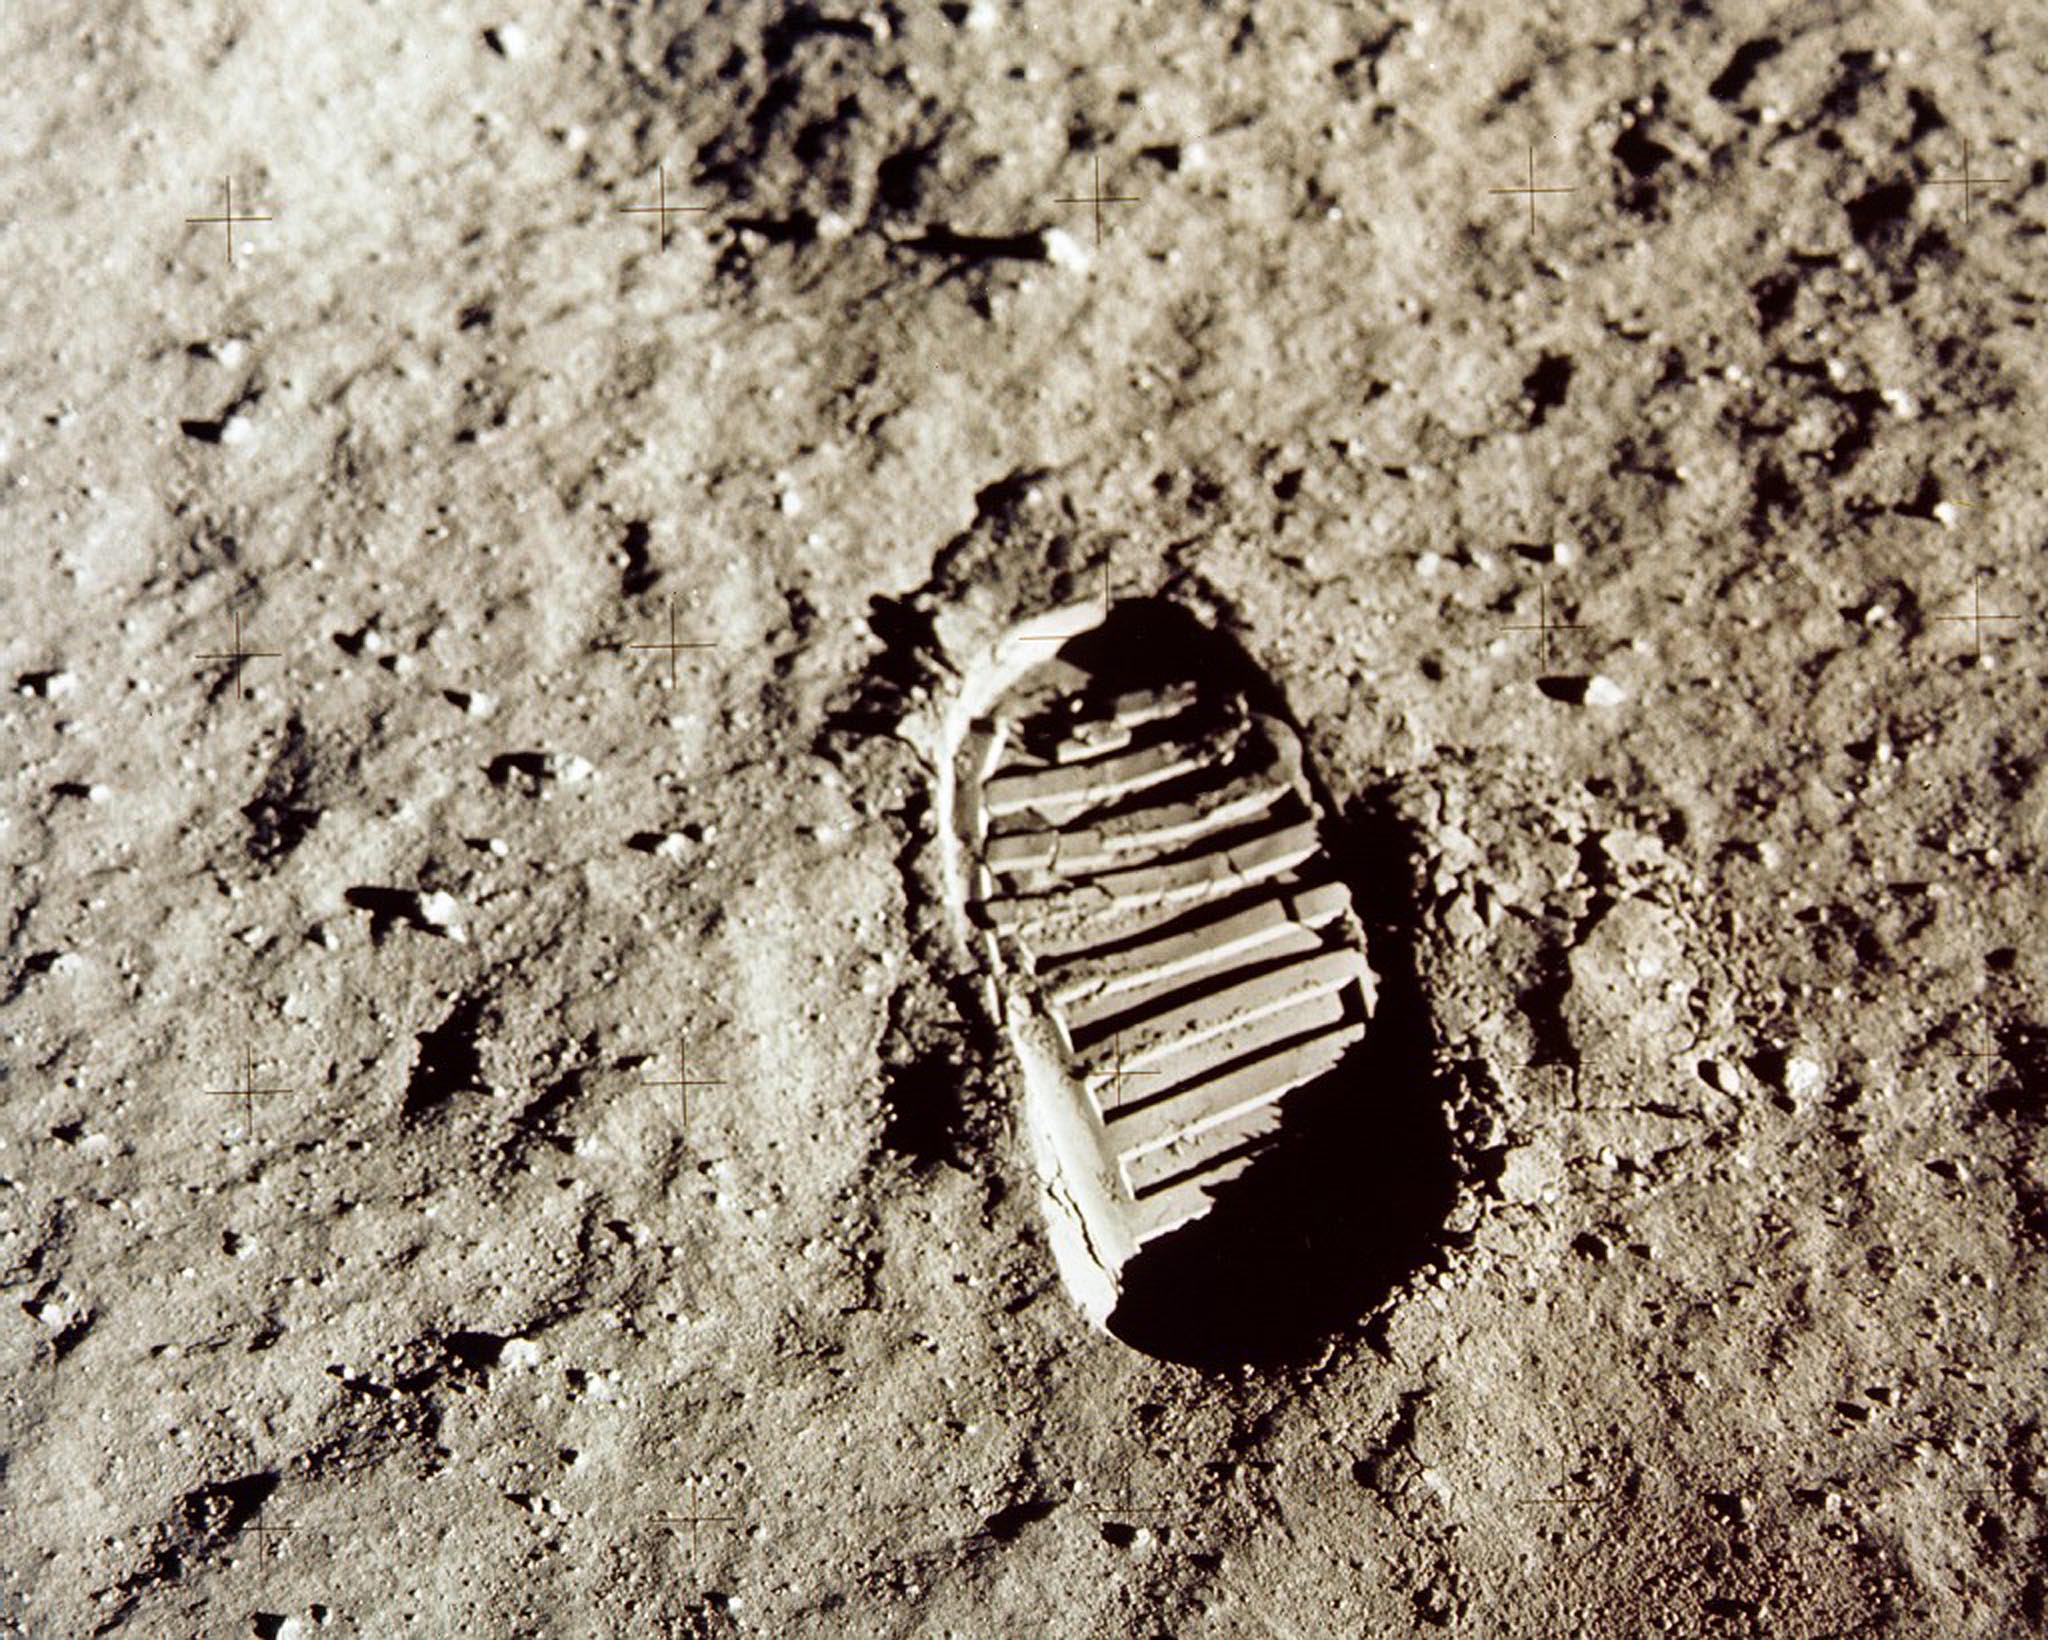 - FILE PHOTO JULY 1969 - Close-up view of an Apollo 11 astronaut's footprint in the lunar soil photographed with a 70mm lunar surface camera during the Apollo 11 extravehicular acitivty on the moon in this July 1969 file photo. The 30th anniversary of the Apollo 11 mission is July 16 (launch) and July 20 (landing on the moon).